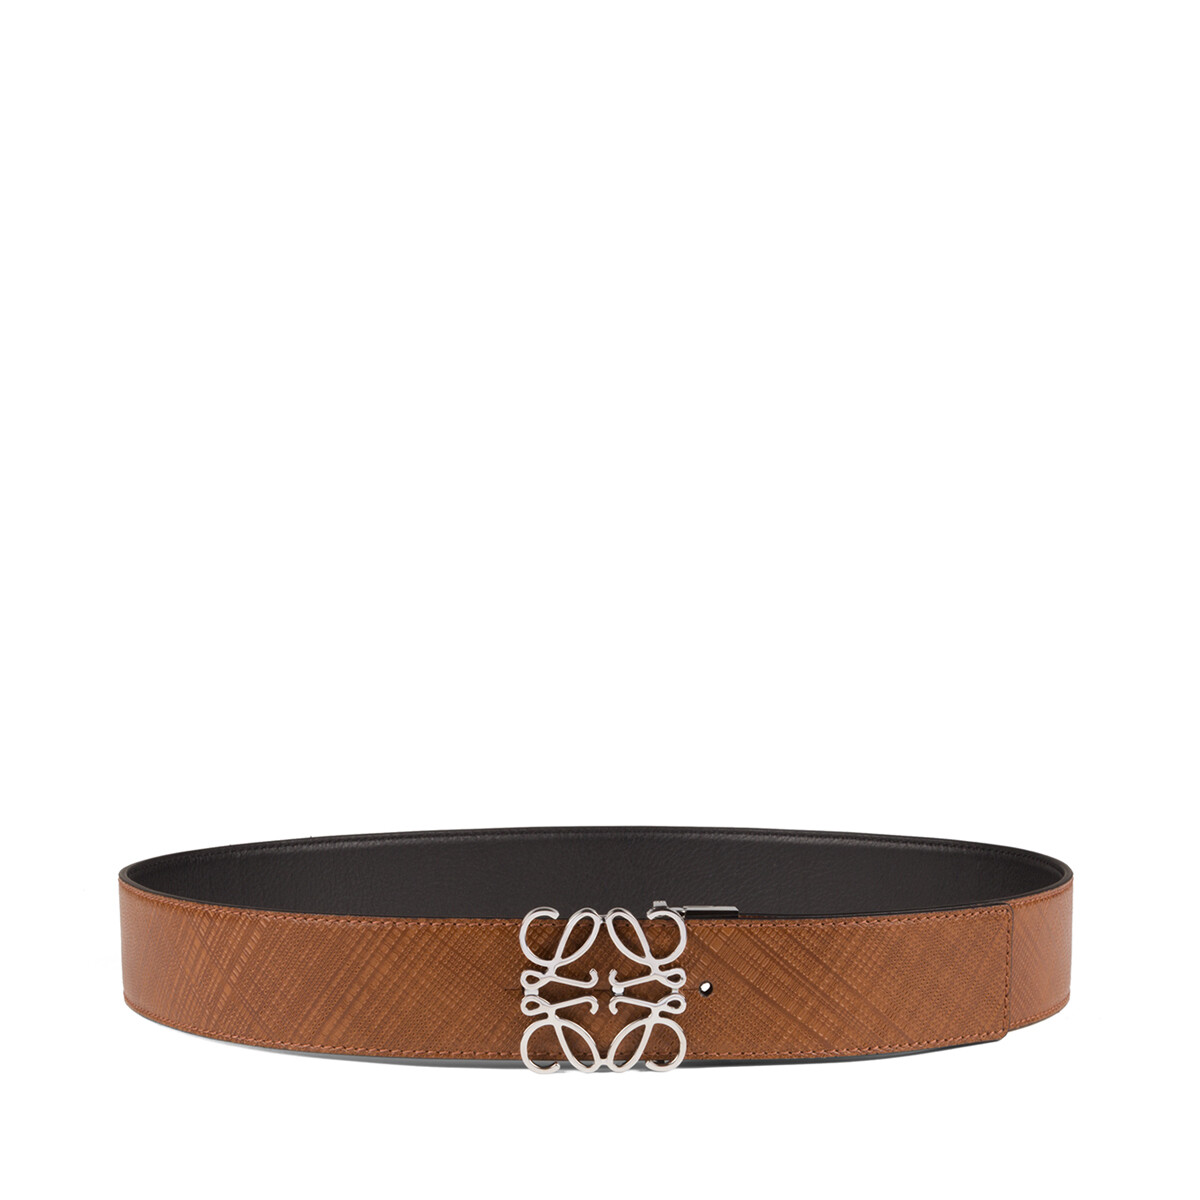 LOEWE Anagram Belt 4Cm Adj/Rev Dark Brown/Black front